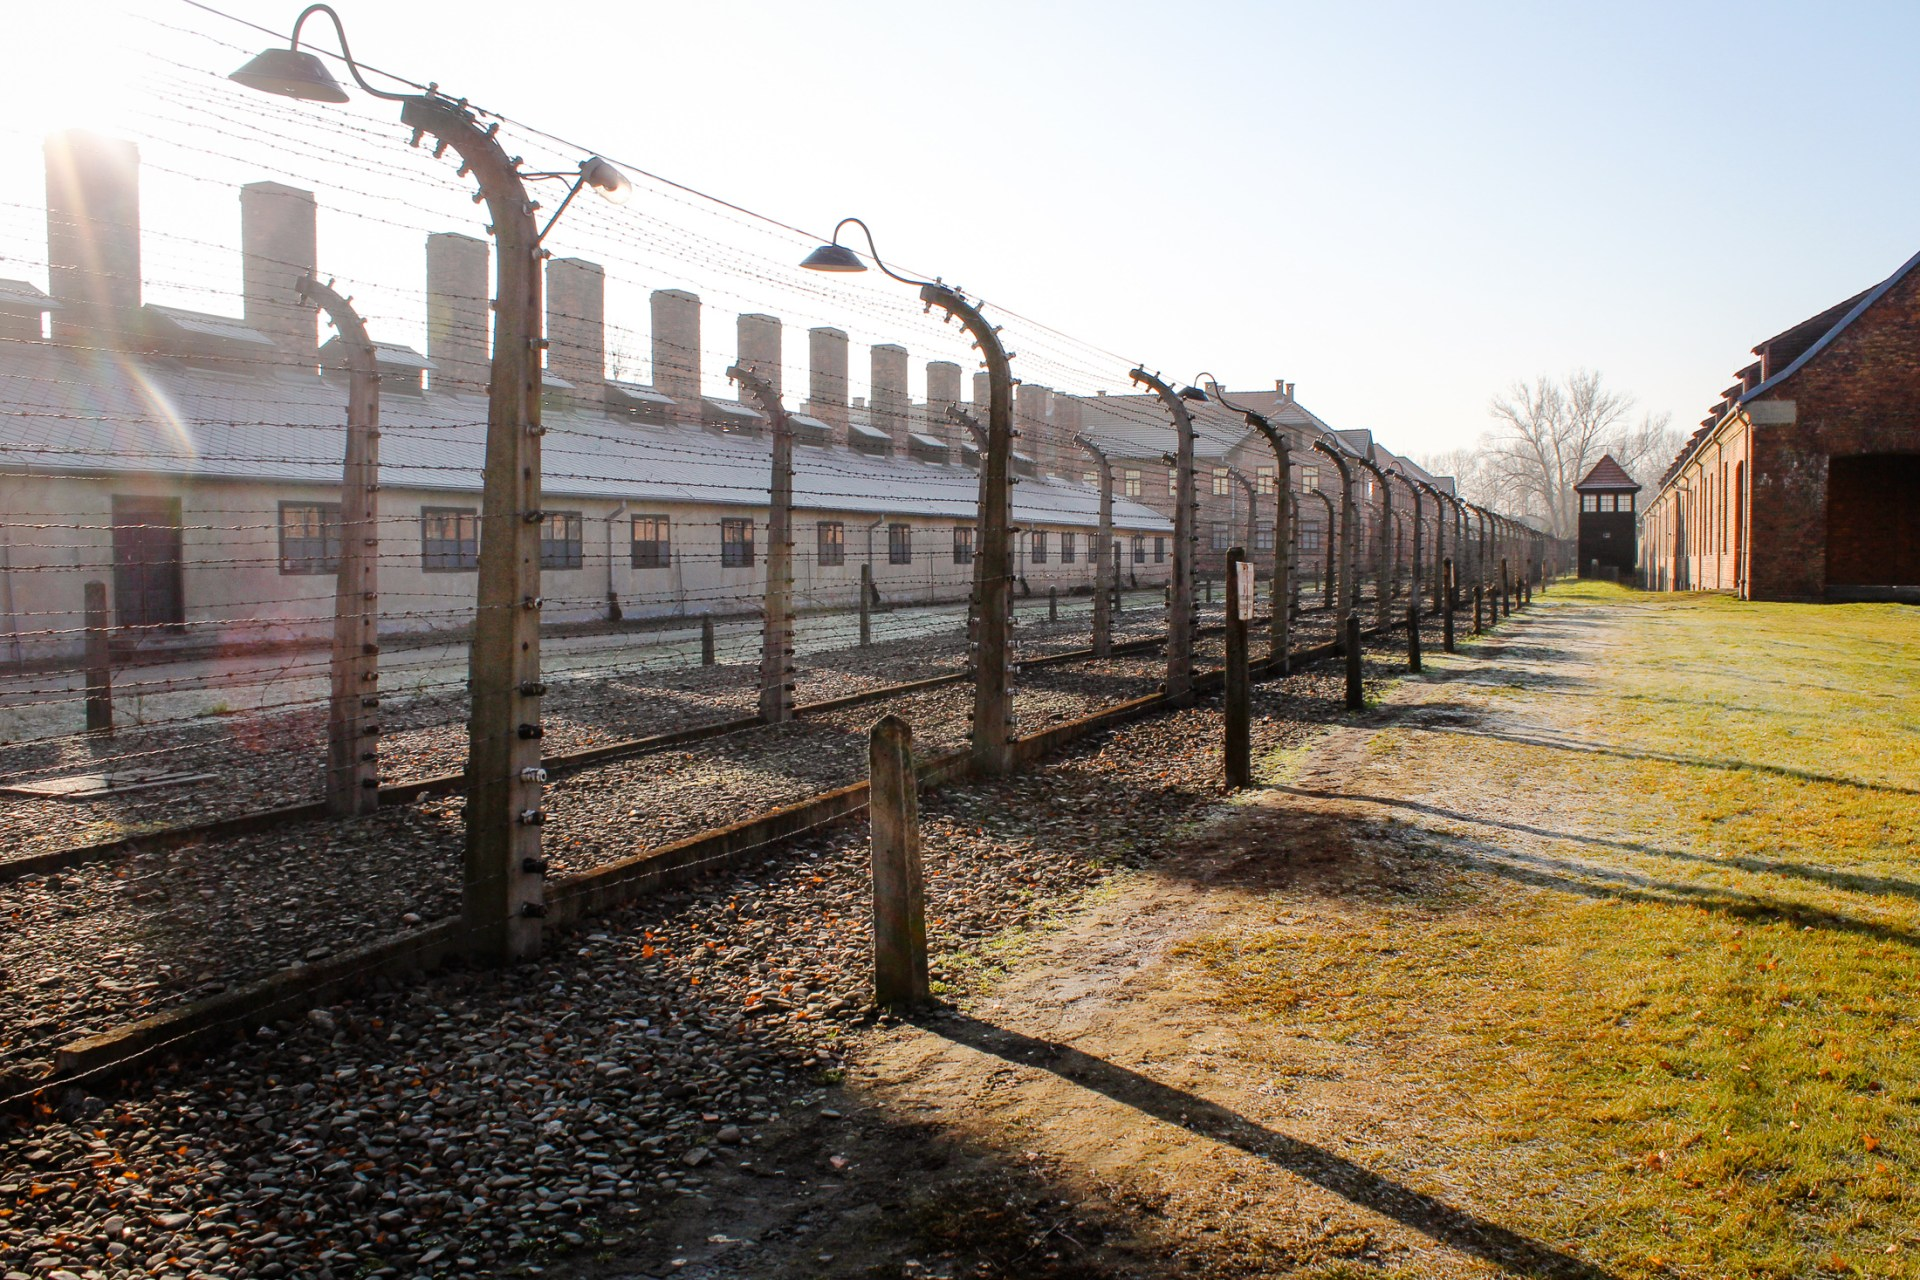 A haunting visit to the Auschwitz death camp